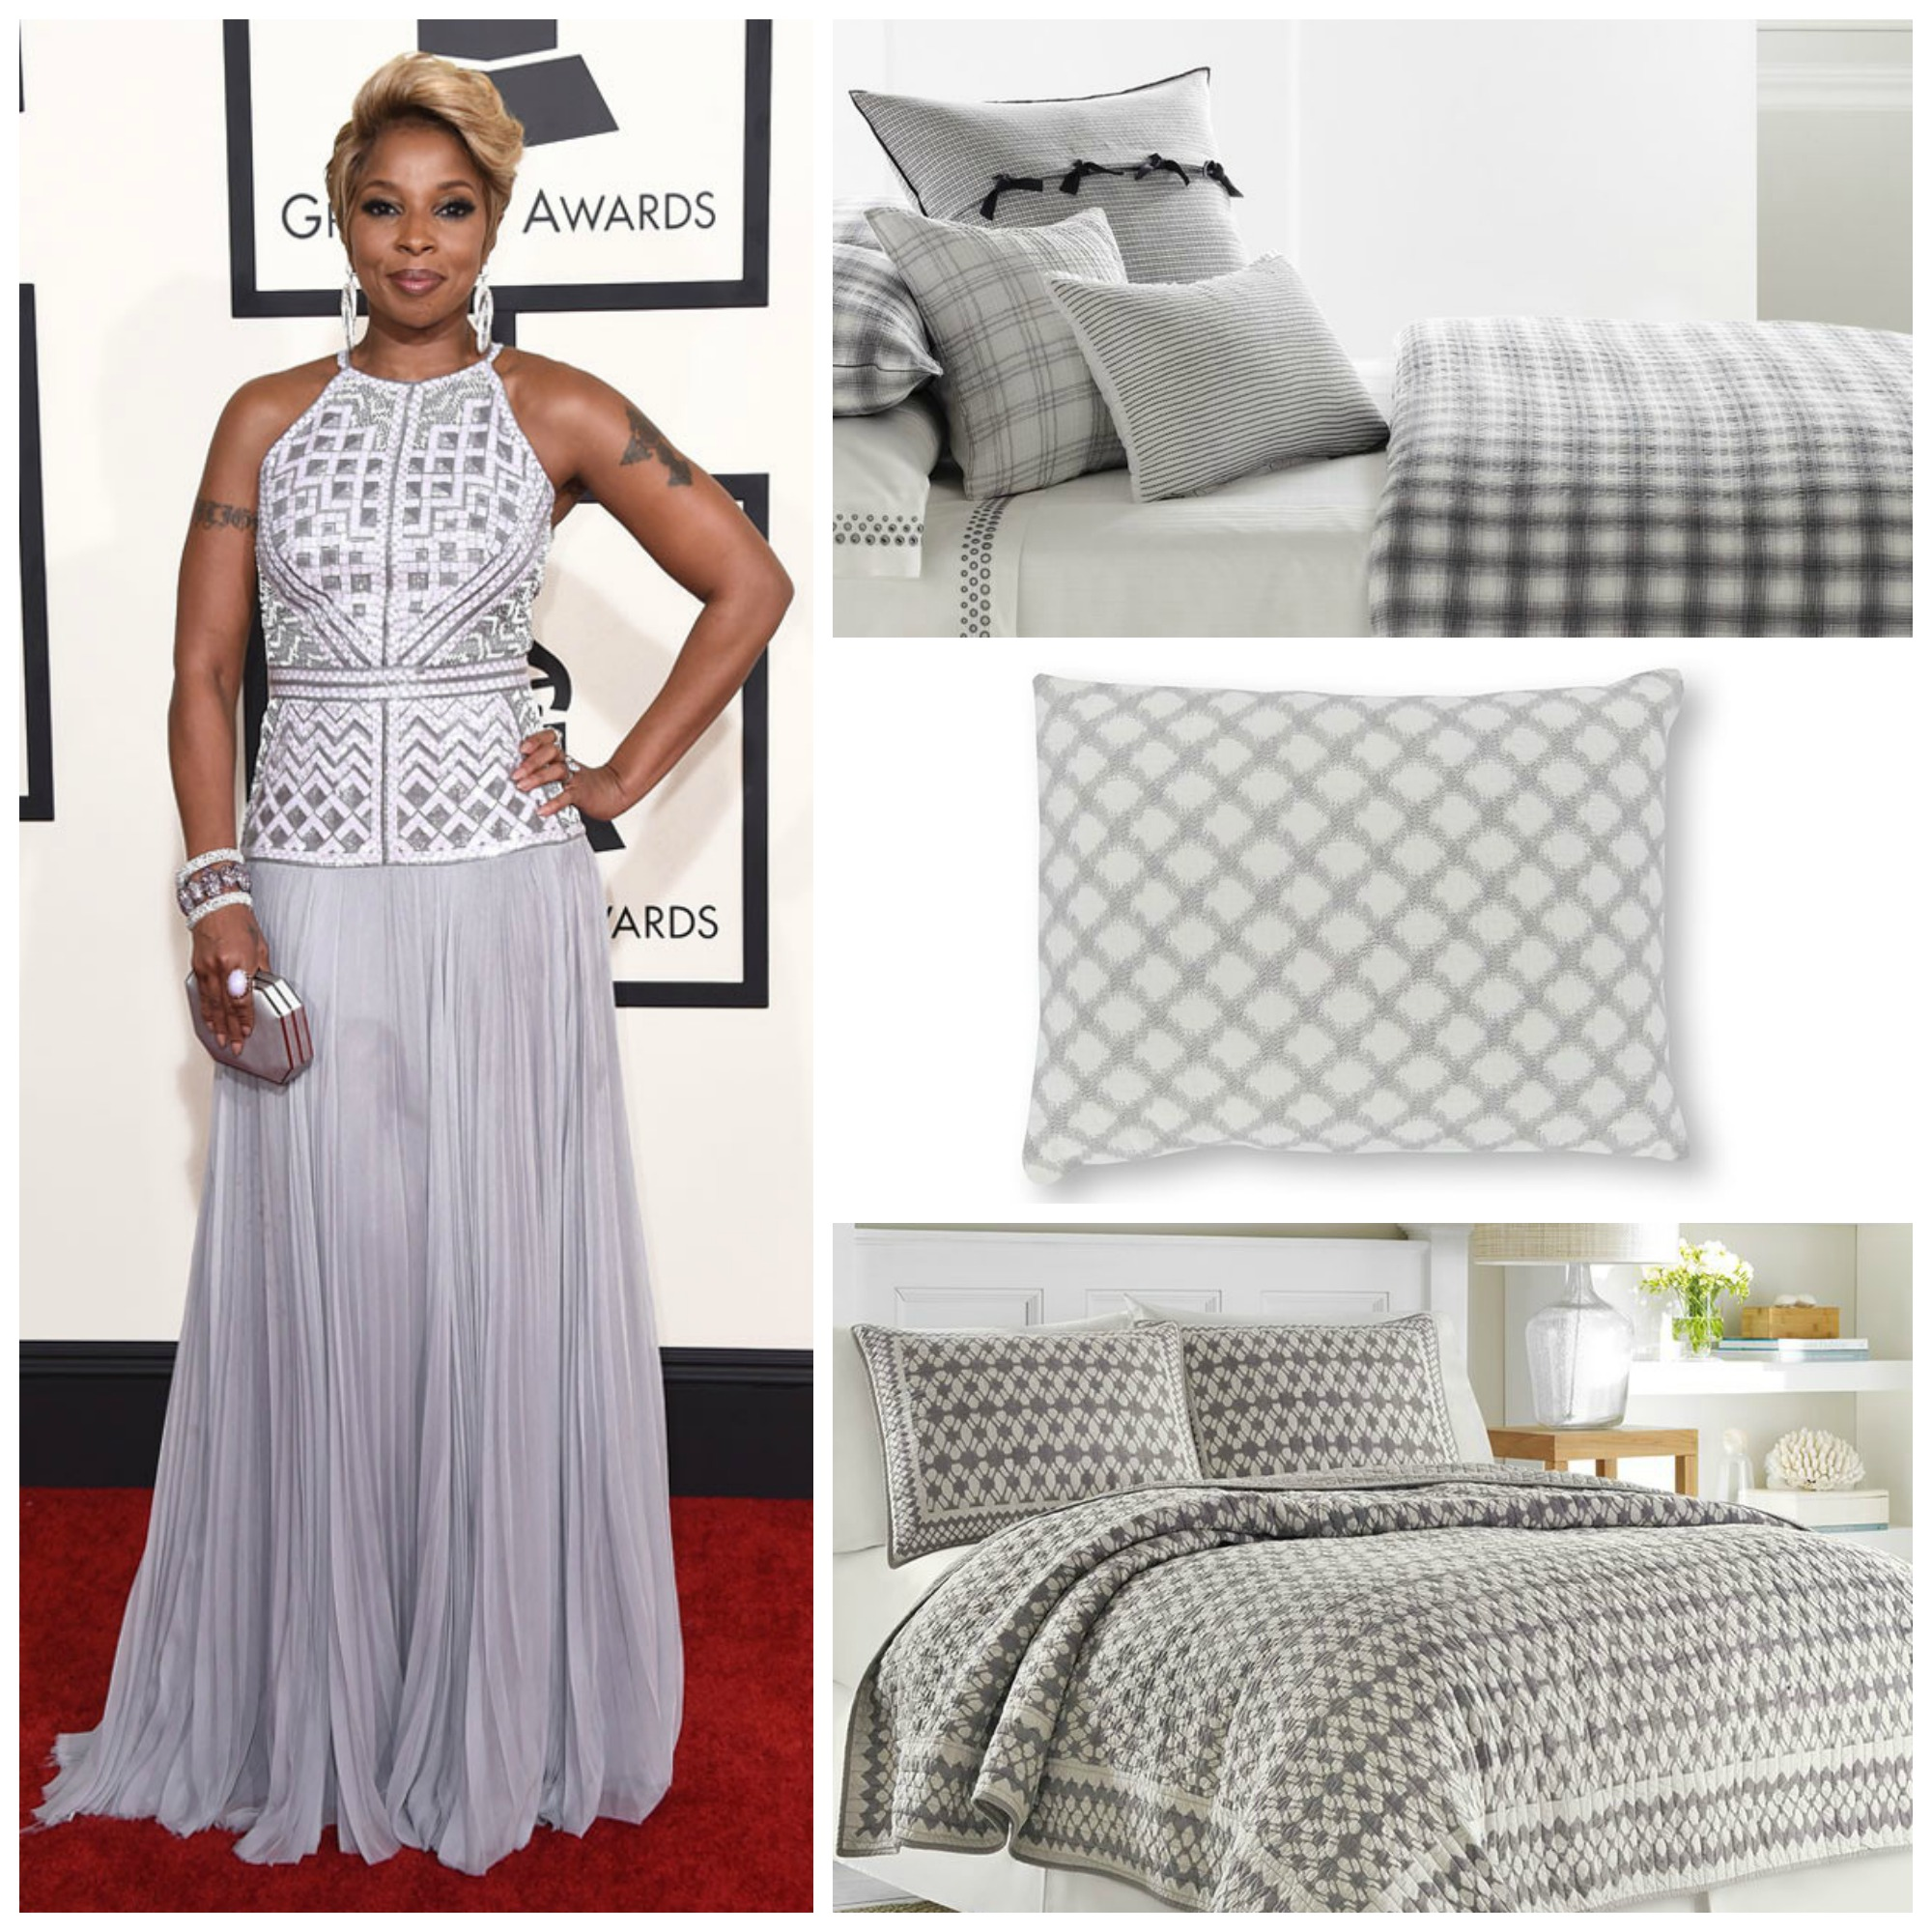 From The Red Carpet To The Bedroom From Beddingstyle Com